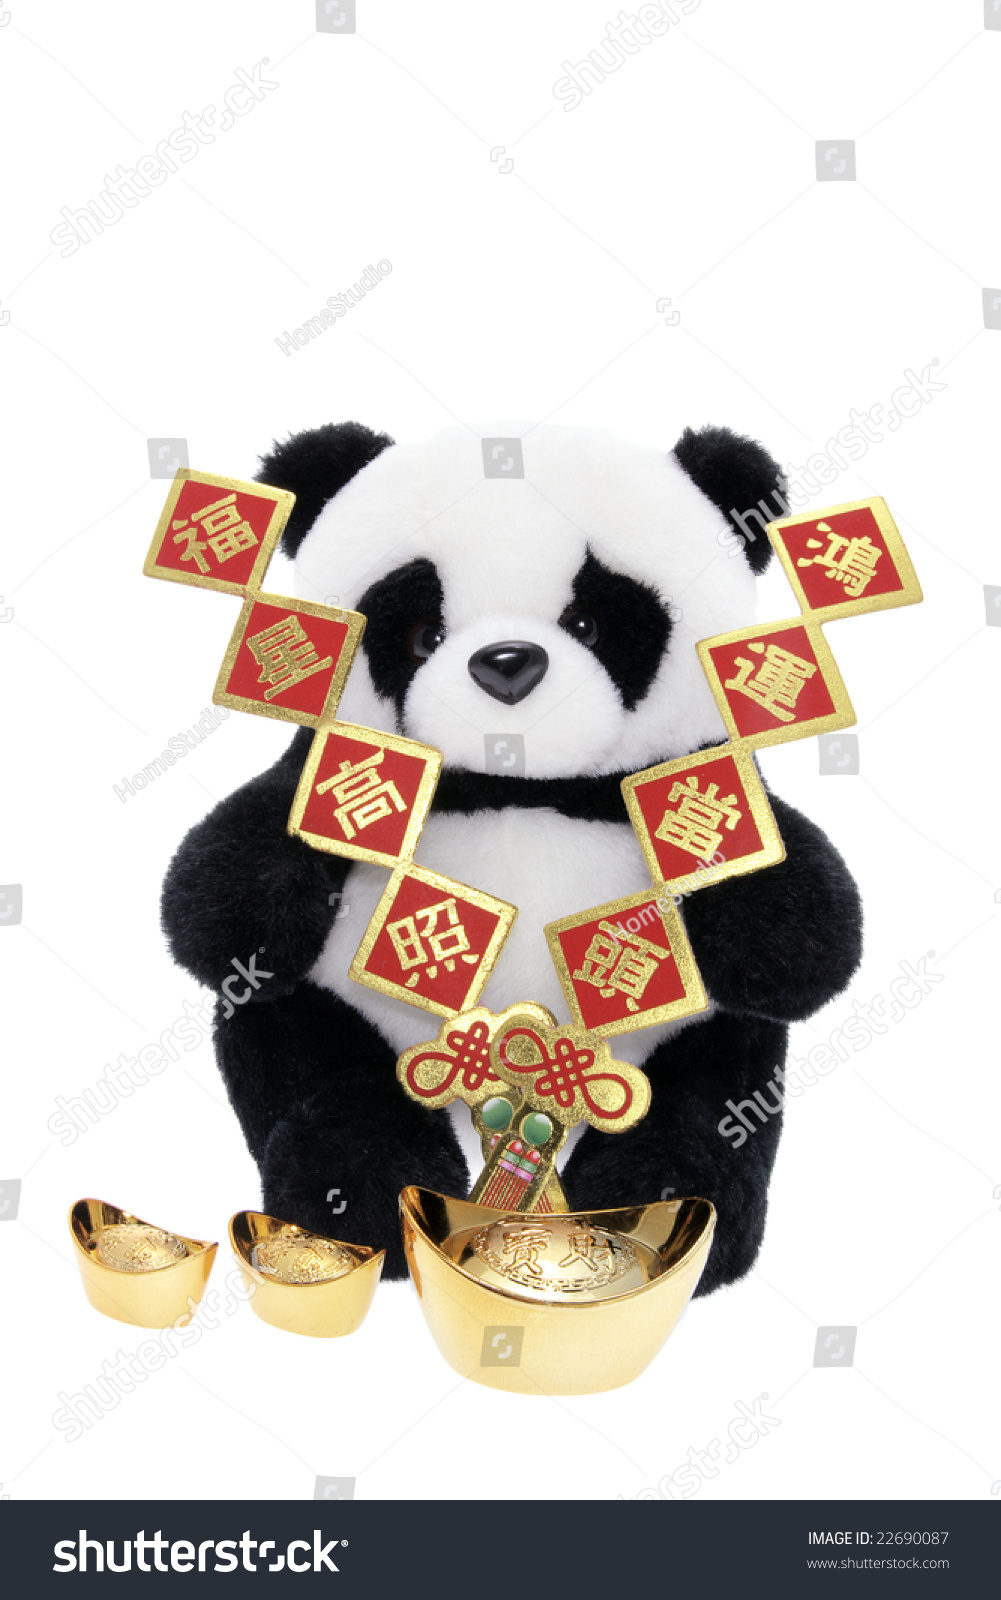 Toys For Chinese New Year : Soft toy panda with chinese new year decorations on white